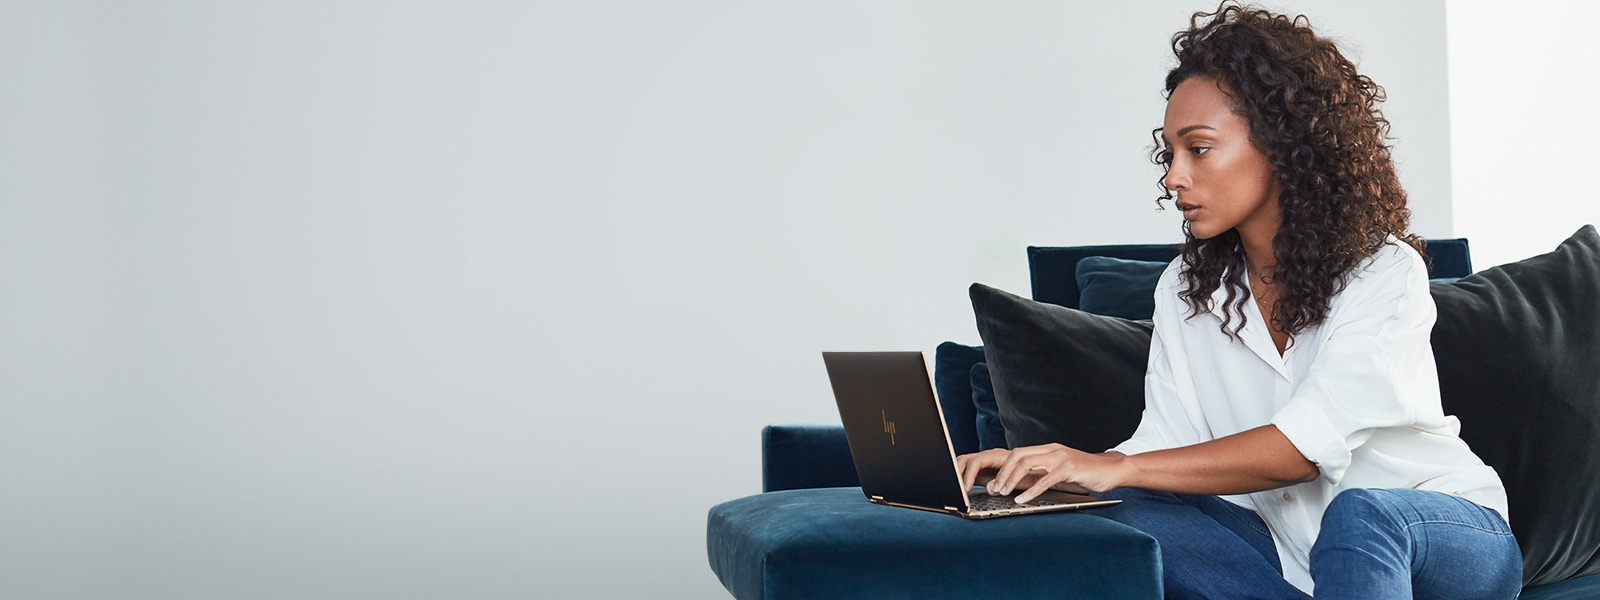 Woman sitting on a sofa using a Windows 10 laptop